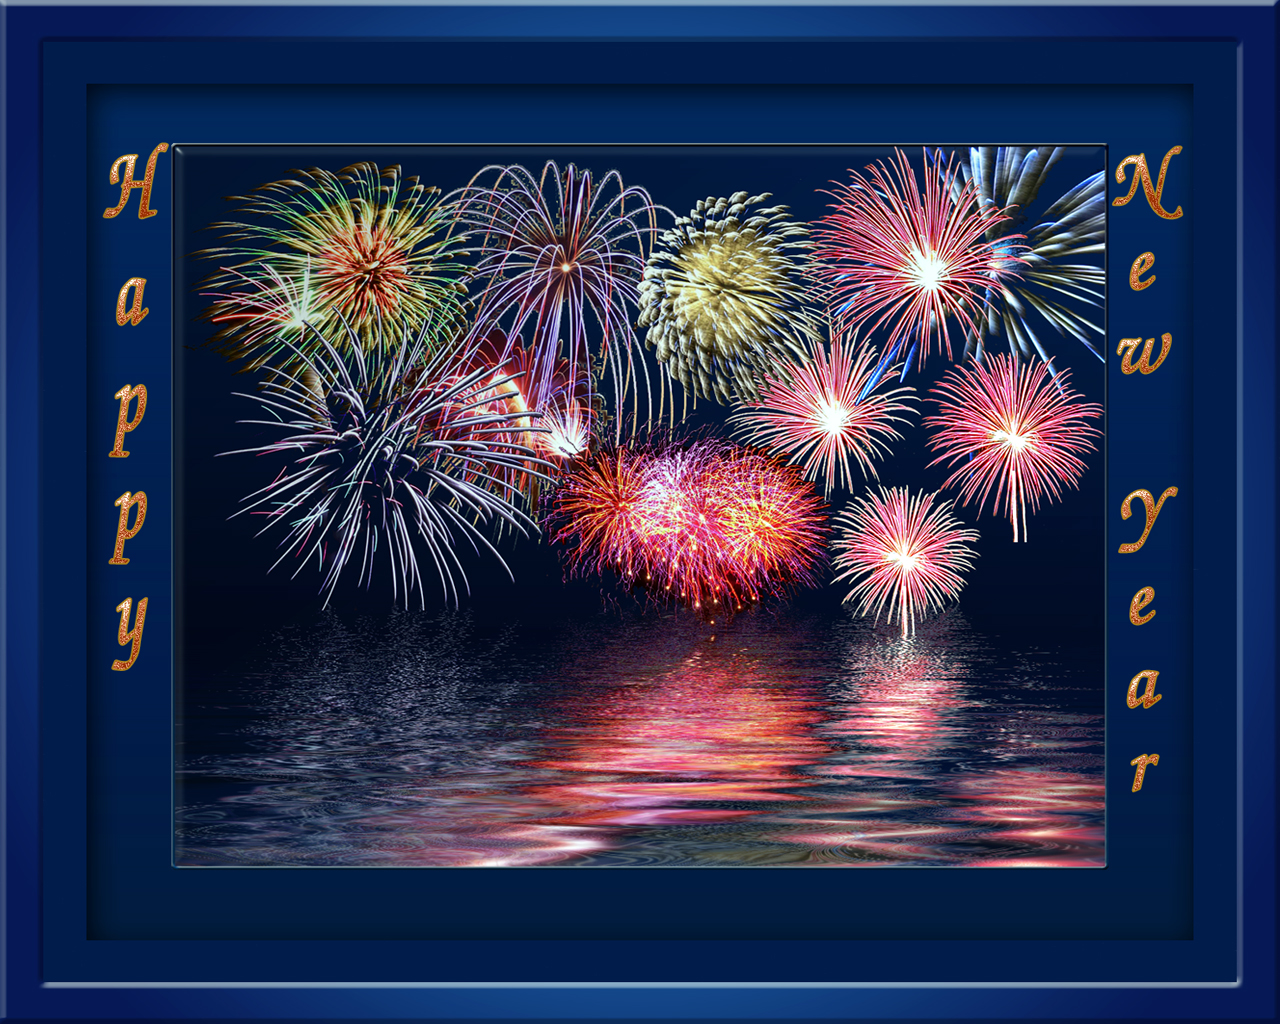 48] New Year Wallpapers for Desktop on WallpaperSafari 1280x1024